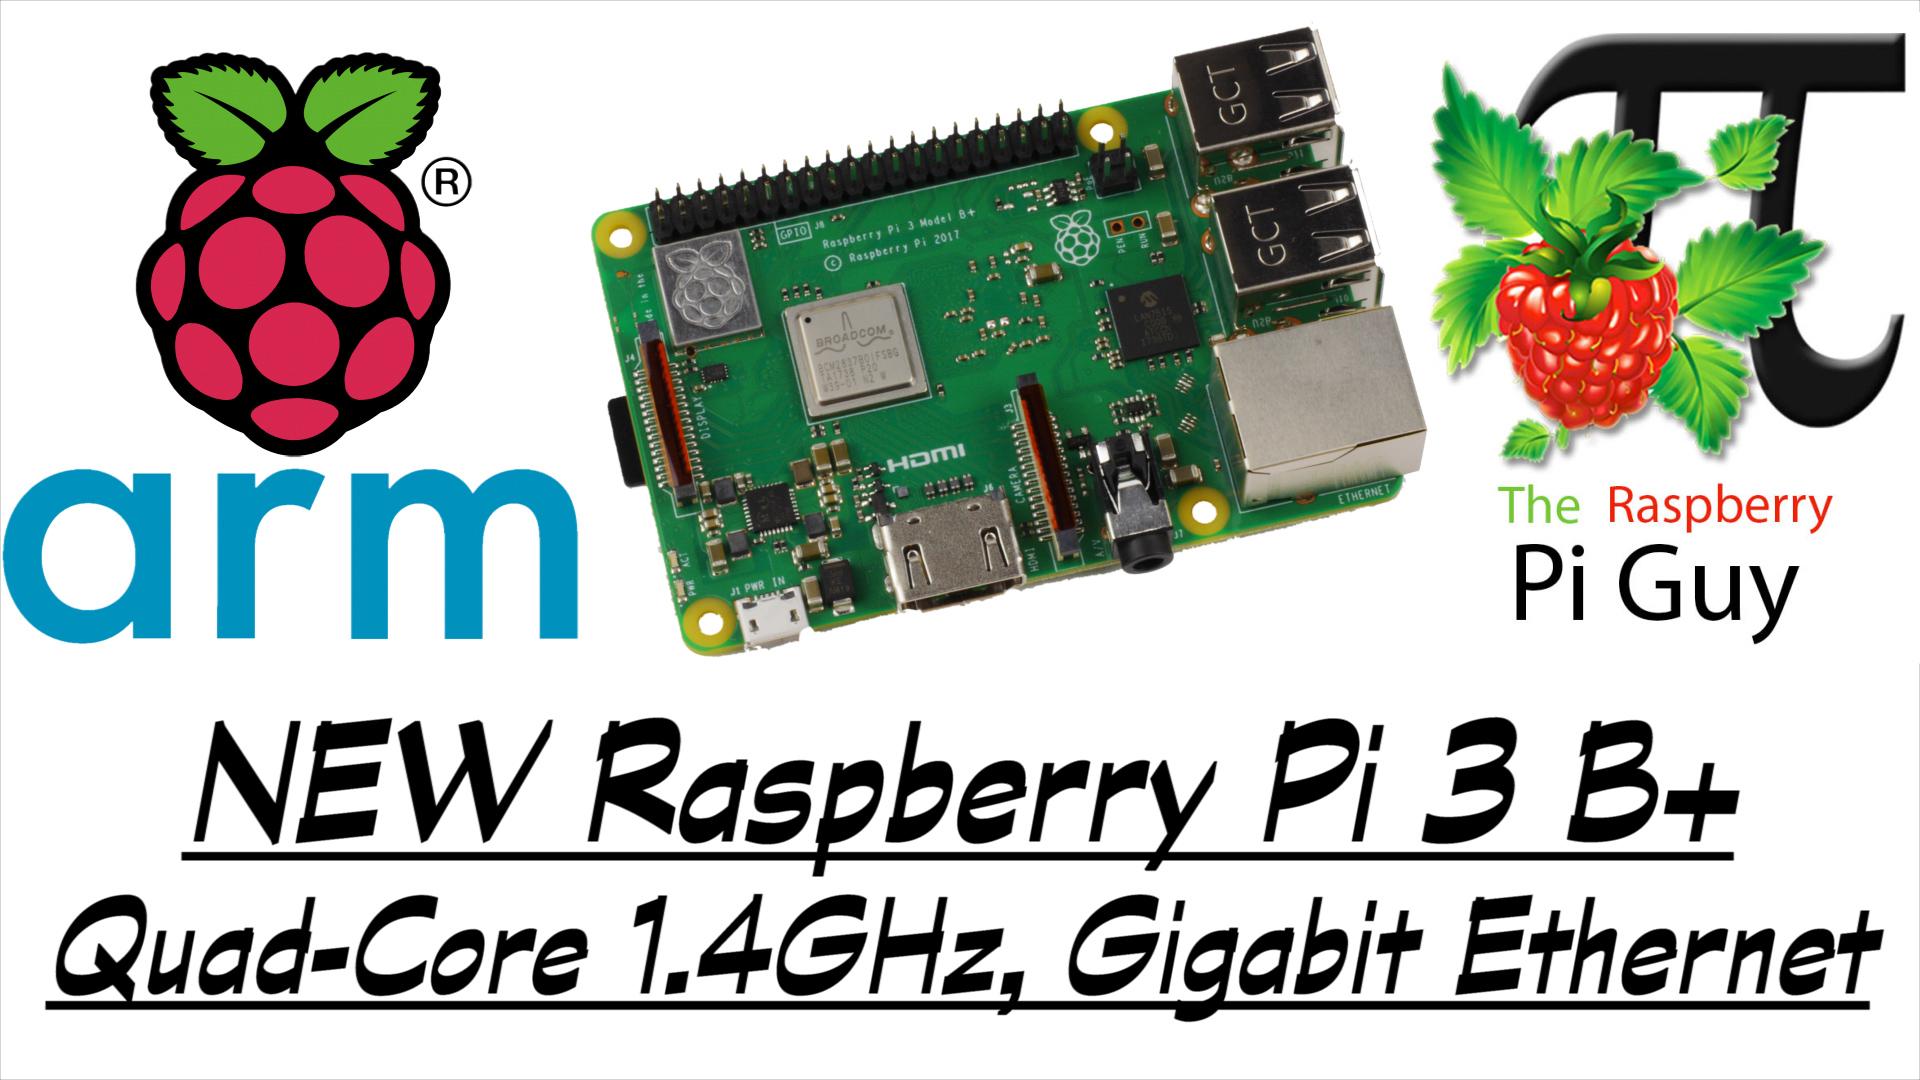 hight resolution of today is the 14th march 2018 pi day and to celebrate this the raspberry pi foundation has just launched their latest product the raspberry pi 3 model b